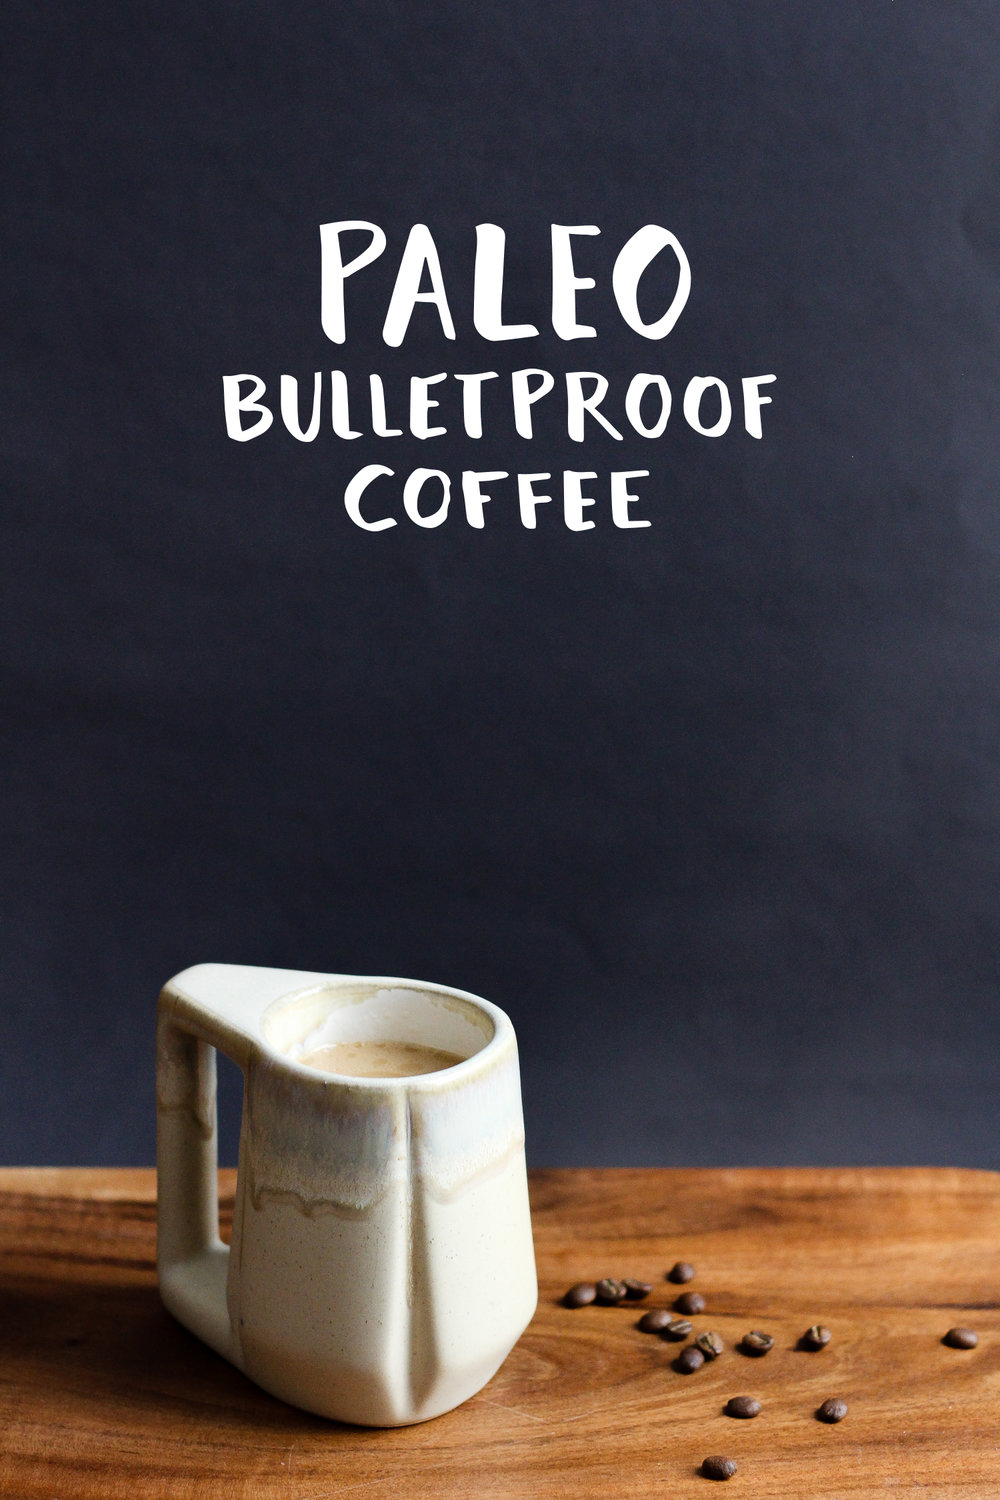 Paleo Bulletproof Coffee Recipe via Worthy Pause